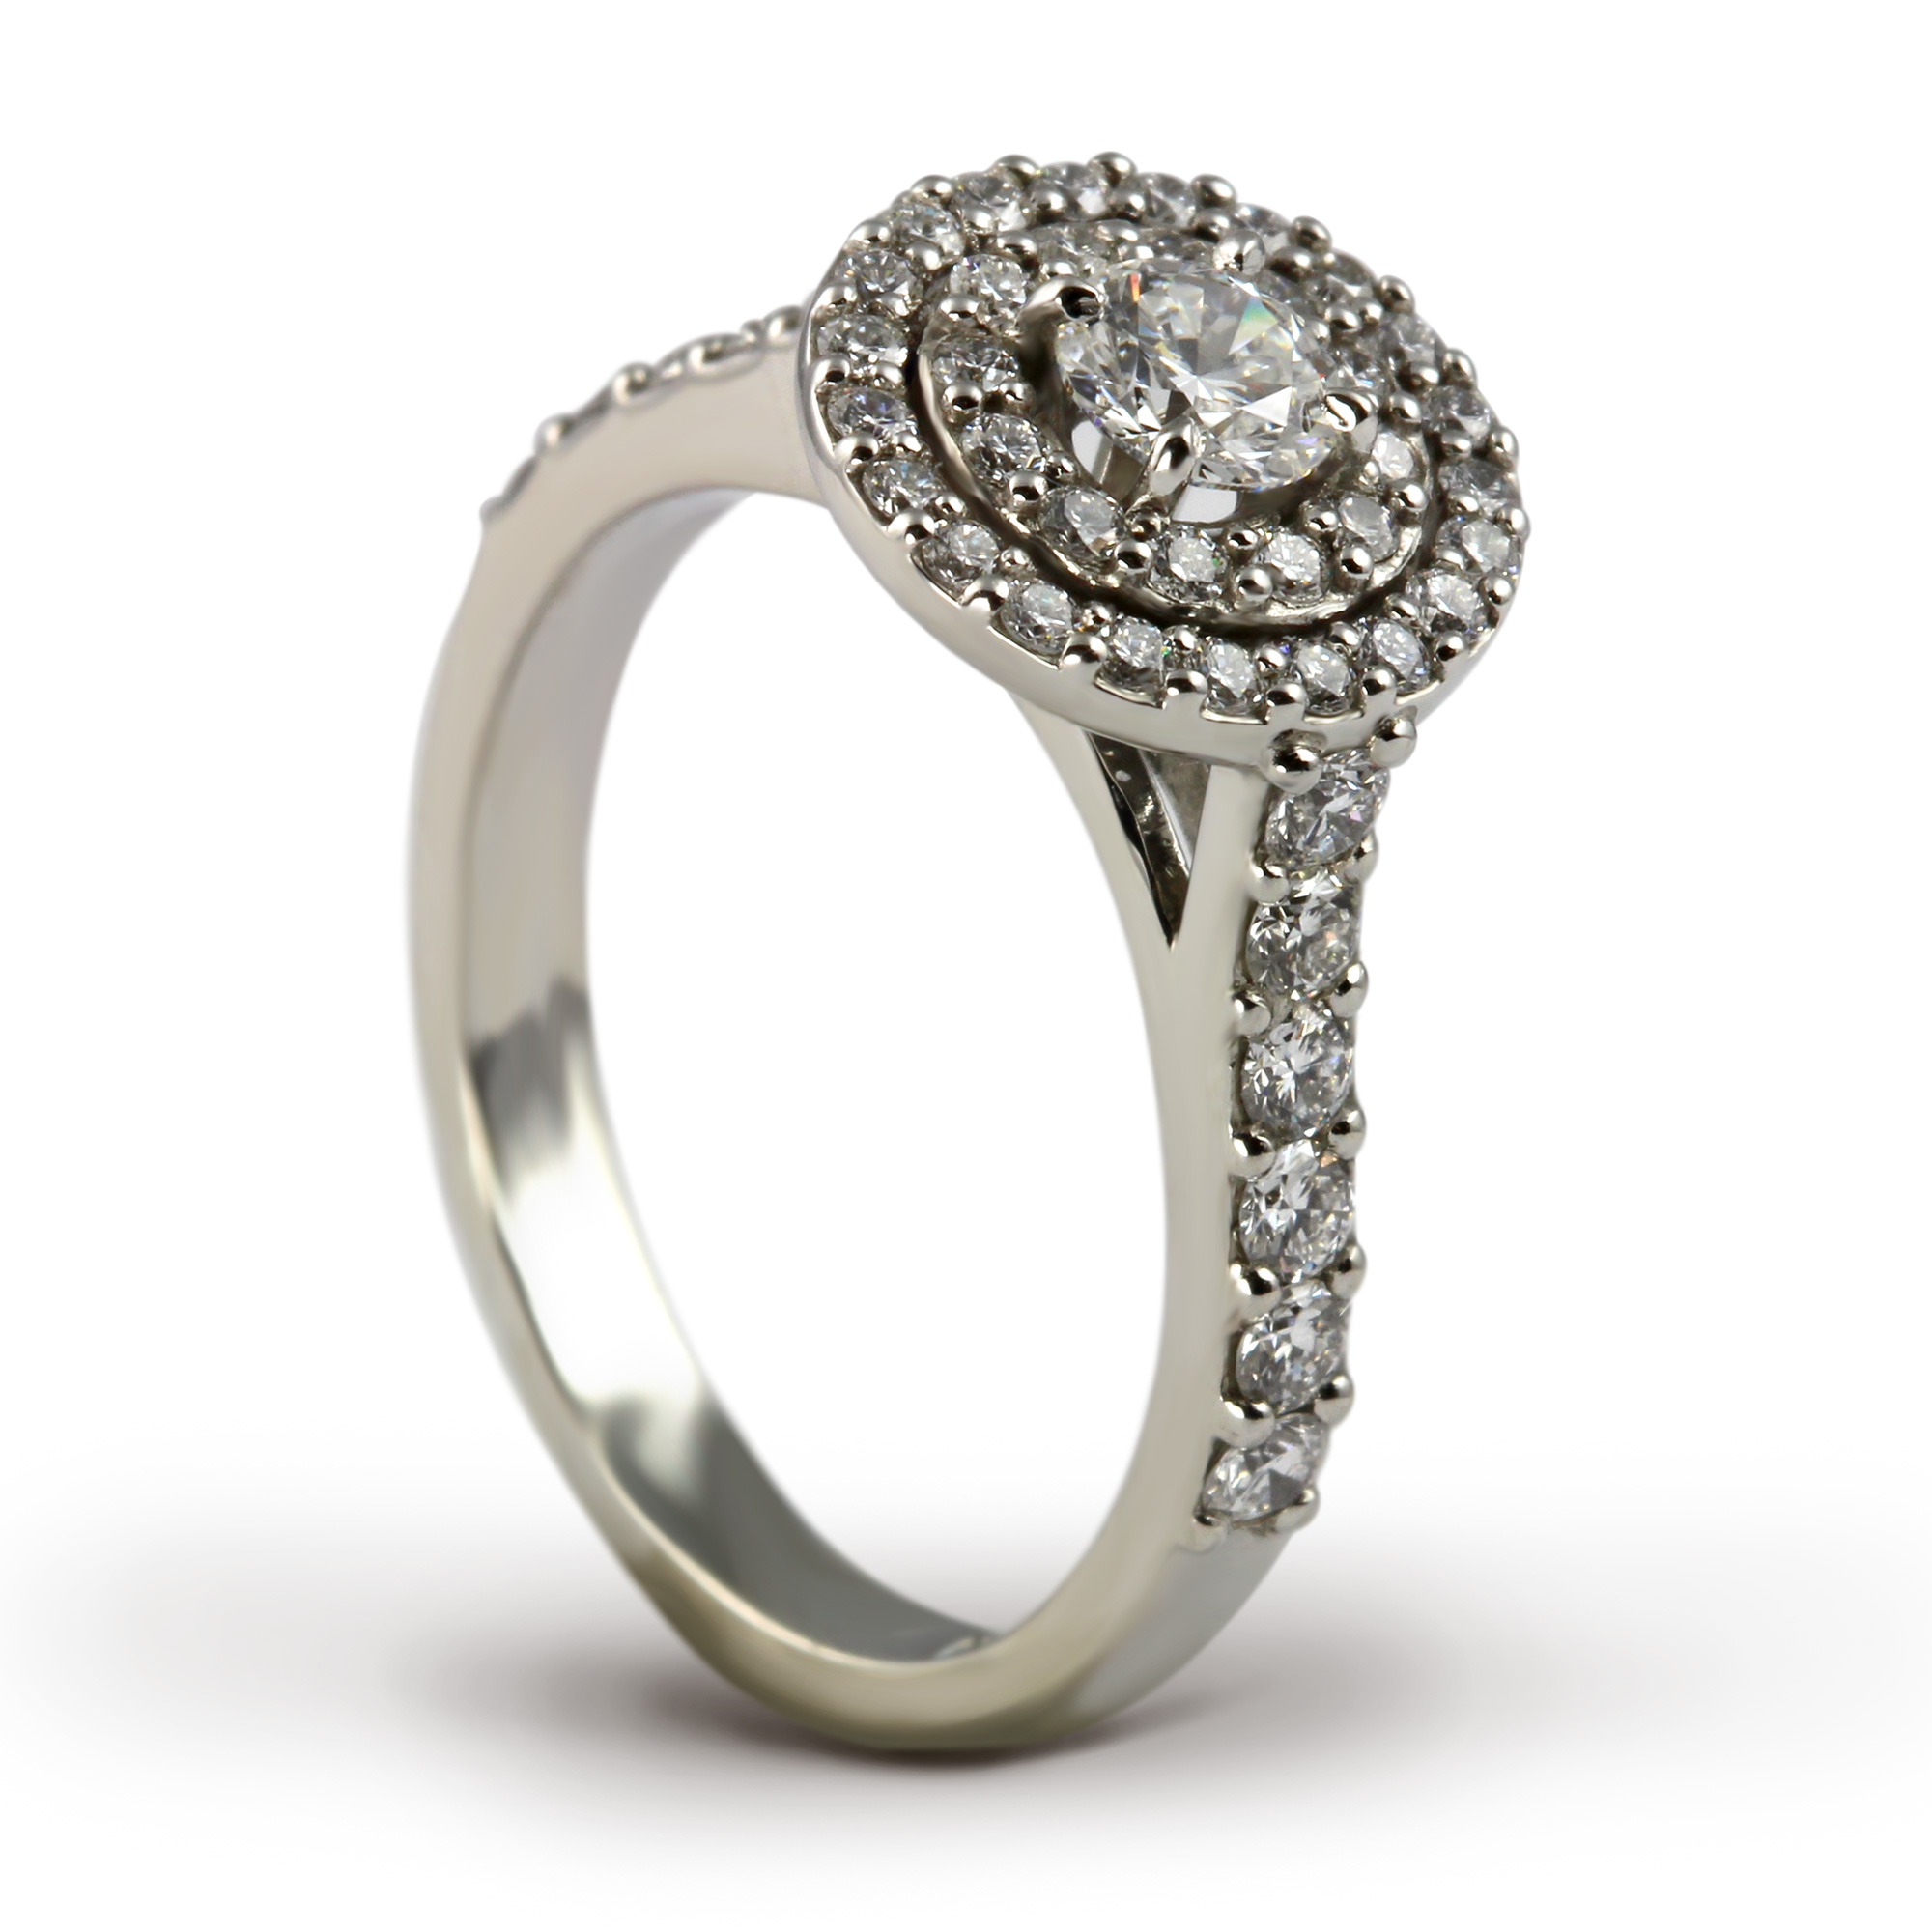 Platinum Diamond Double Halo Ring Henry D Johnstone Jewellers of